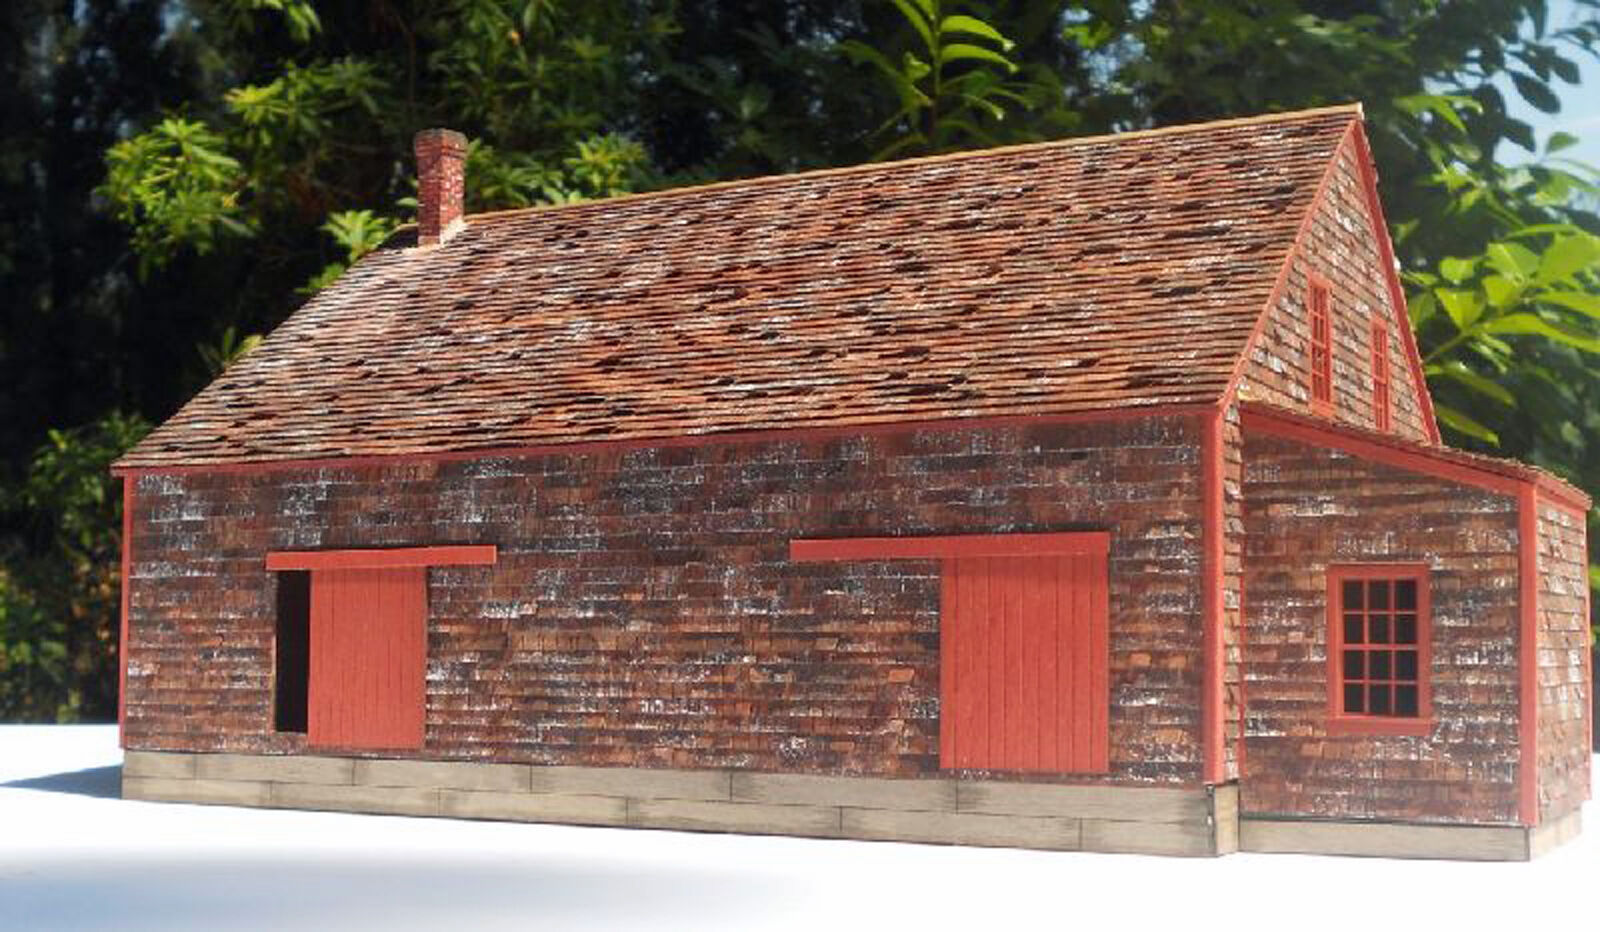 POTATO HOUSE O On3 On30 Model Railroad Structure Wood Unpainted Laser Kit RSL102